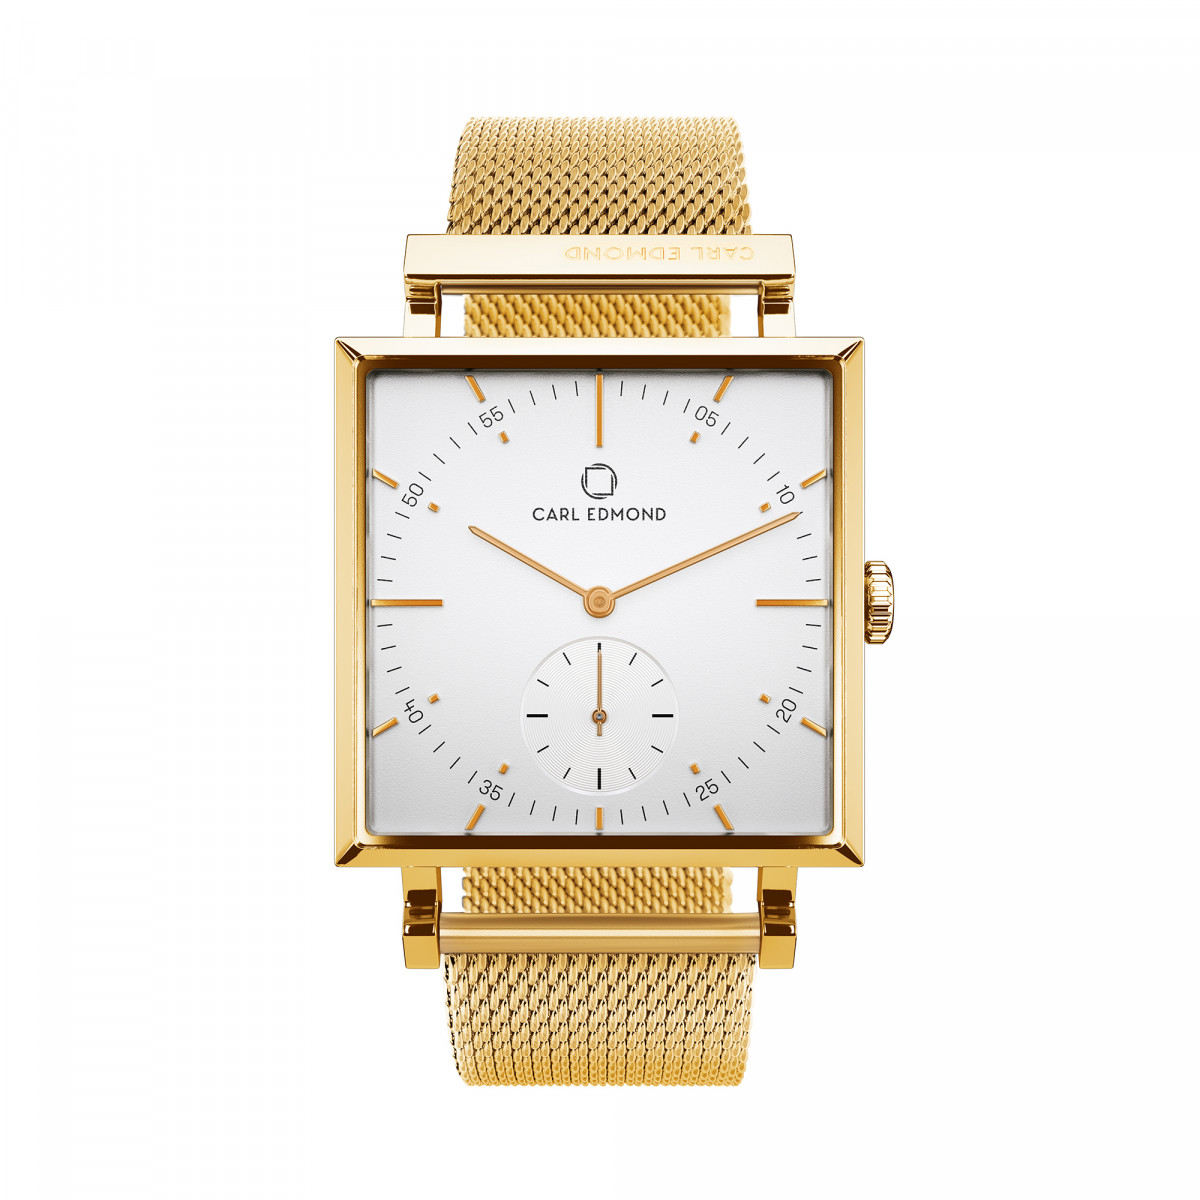 Montre Femme Carl Edmond GRANIT Blanc Gold G2921-MG18 29 mm - Mouvement Suisse